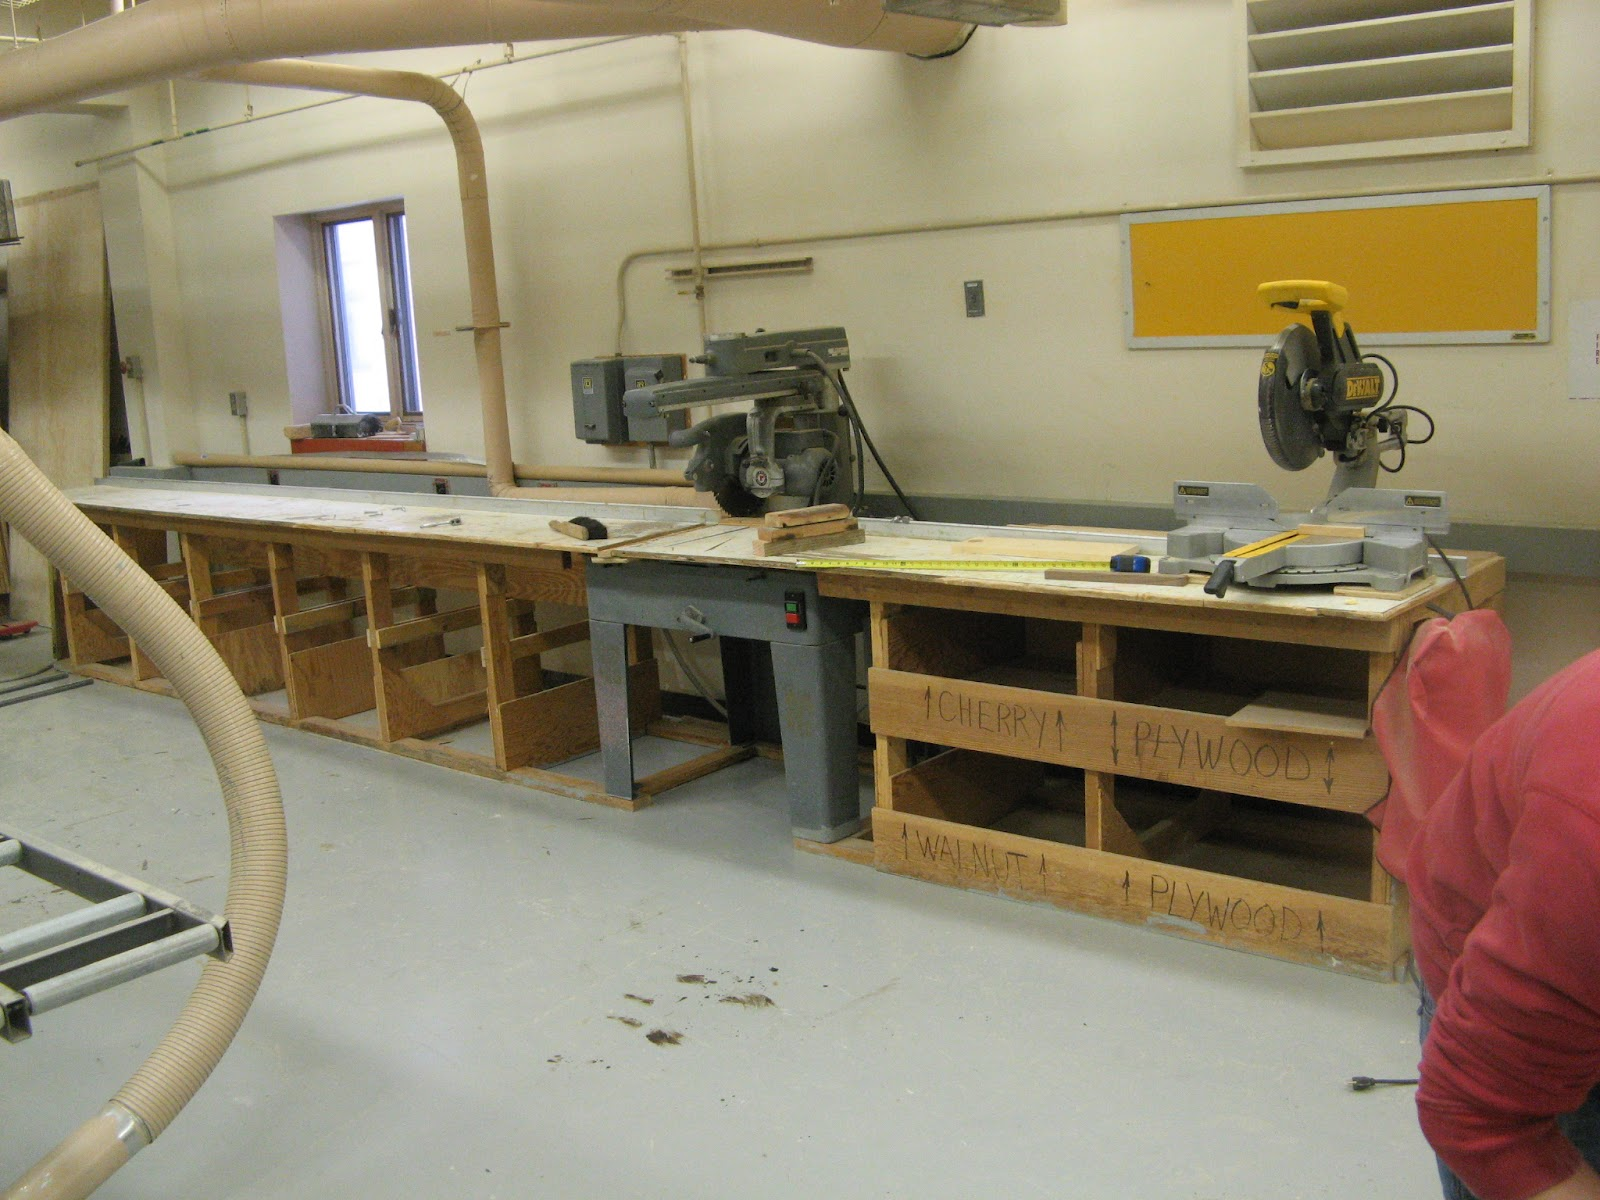 Radial Arm Saw Bench Plans http://bbbsdwoodshop.blogspot.com/2012/03/new-cutting-bench.html